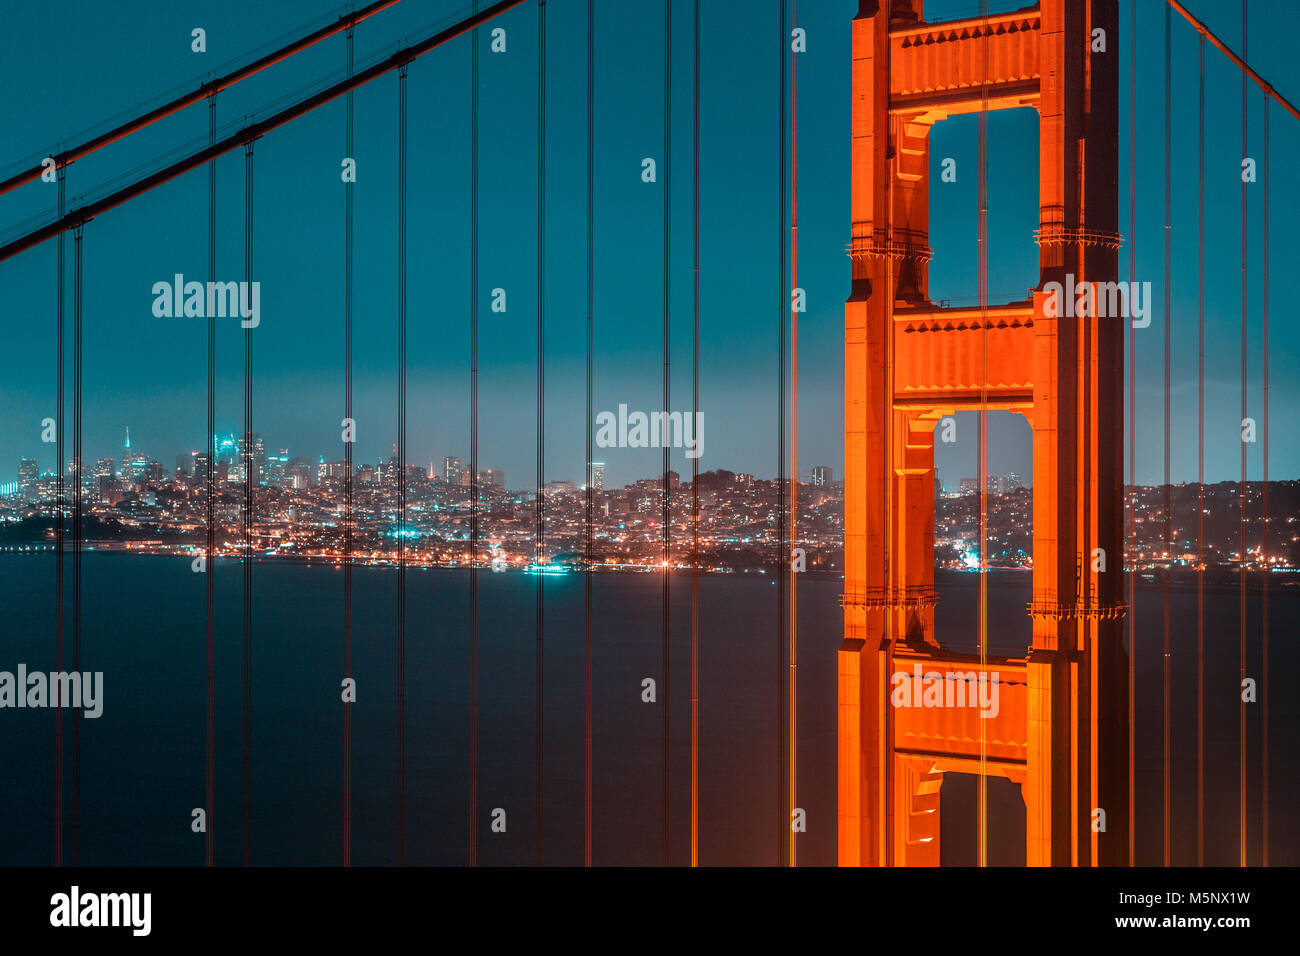 Classic view of famous Golden Gate Bridge with the skyline of San Francisco in the background in beautiful post - Stock Image